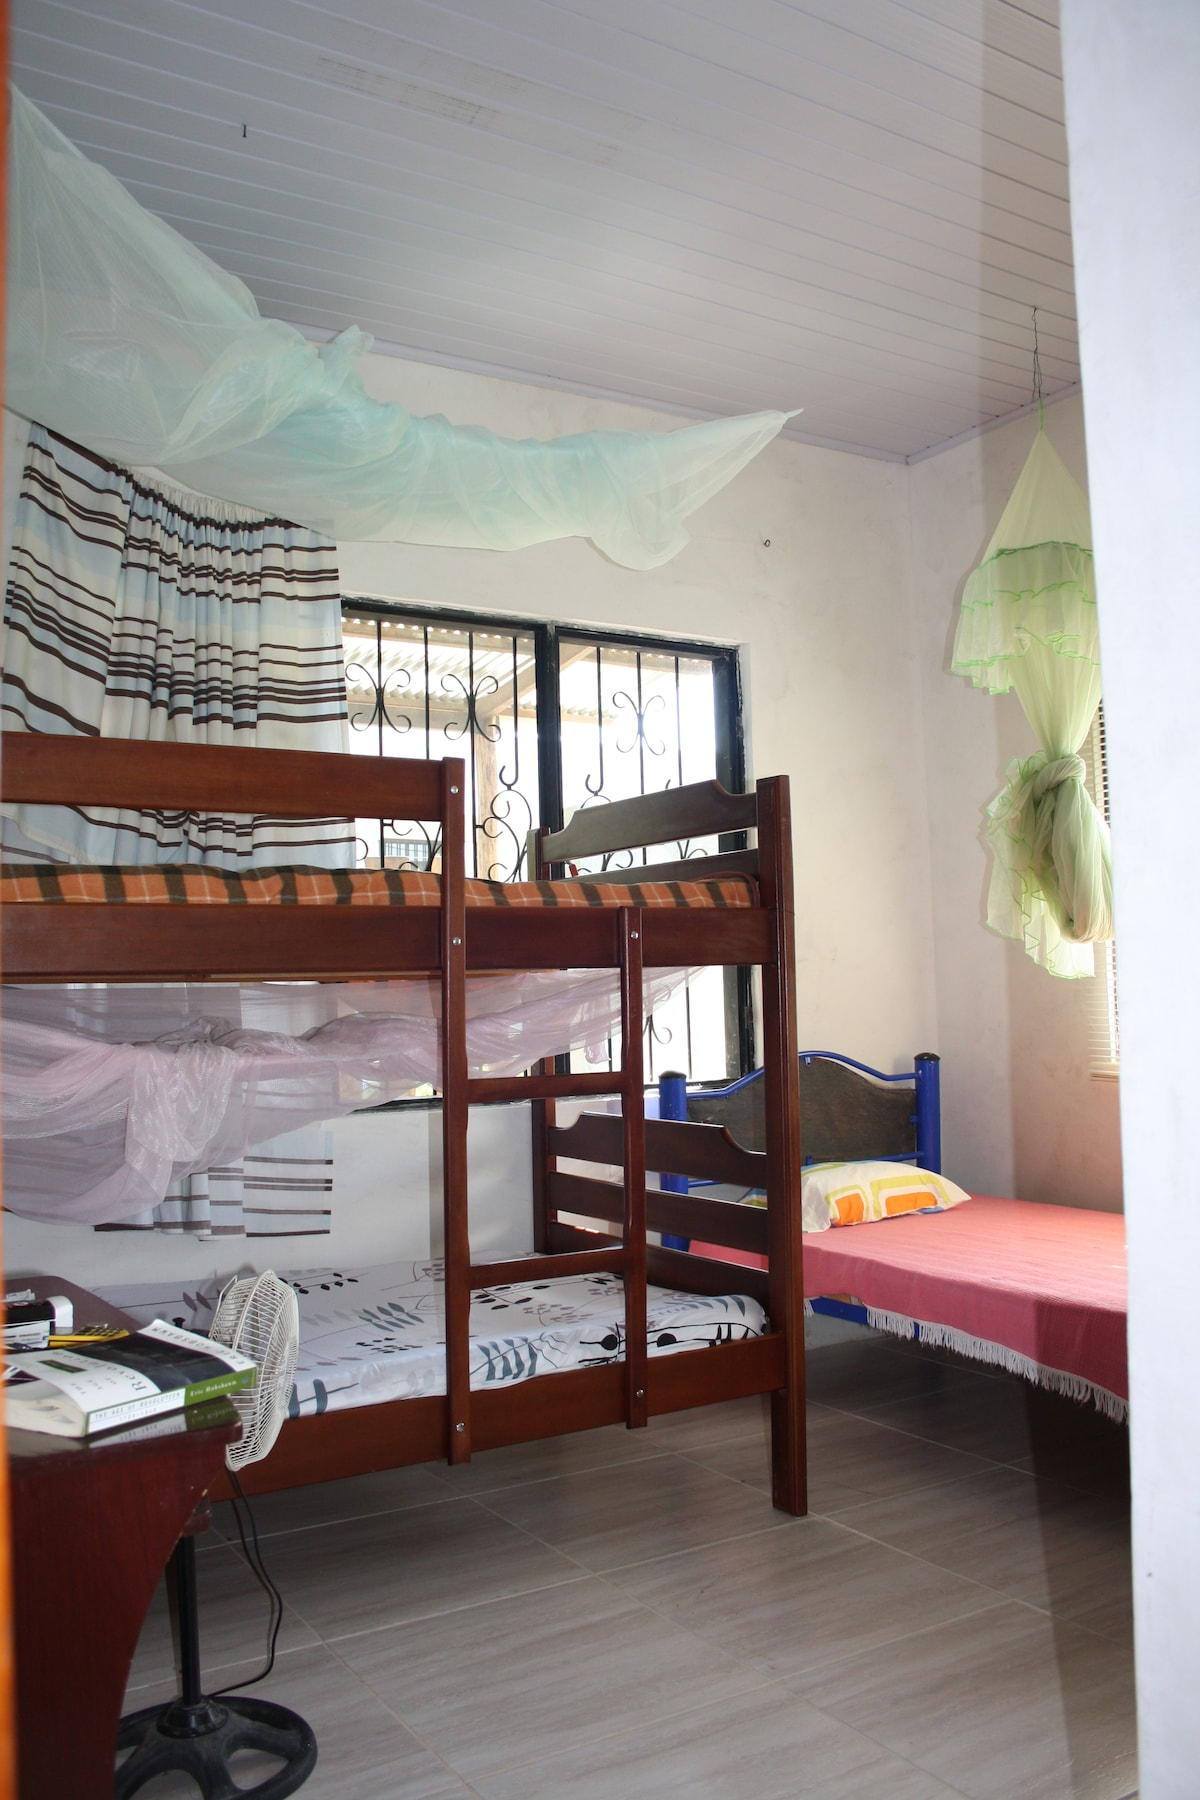 Dorms 5 USD per night